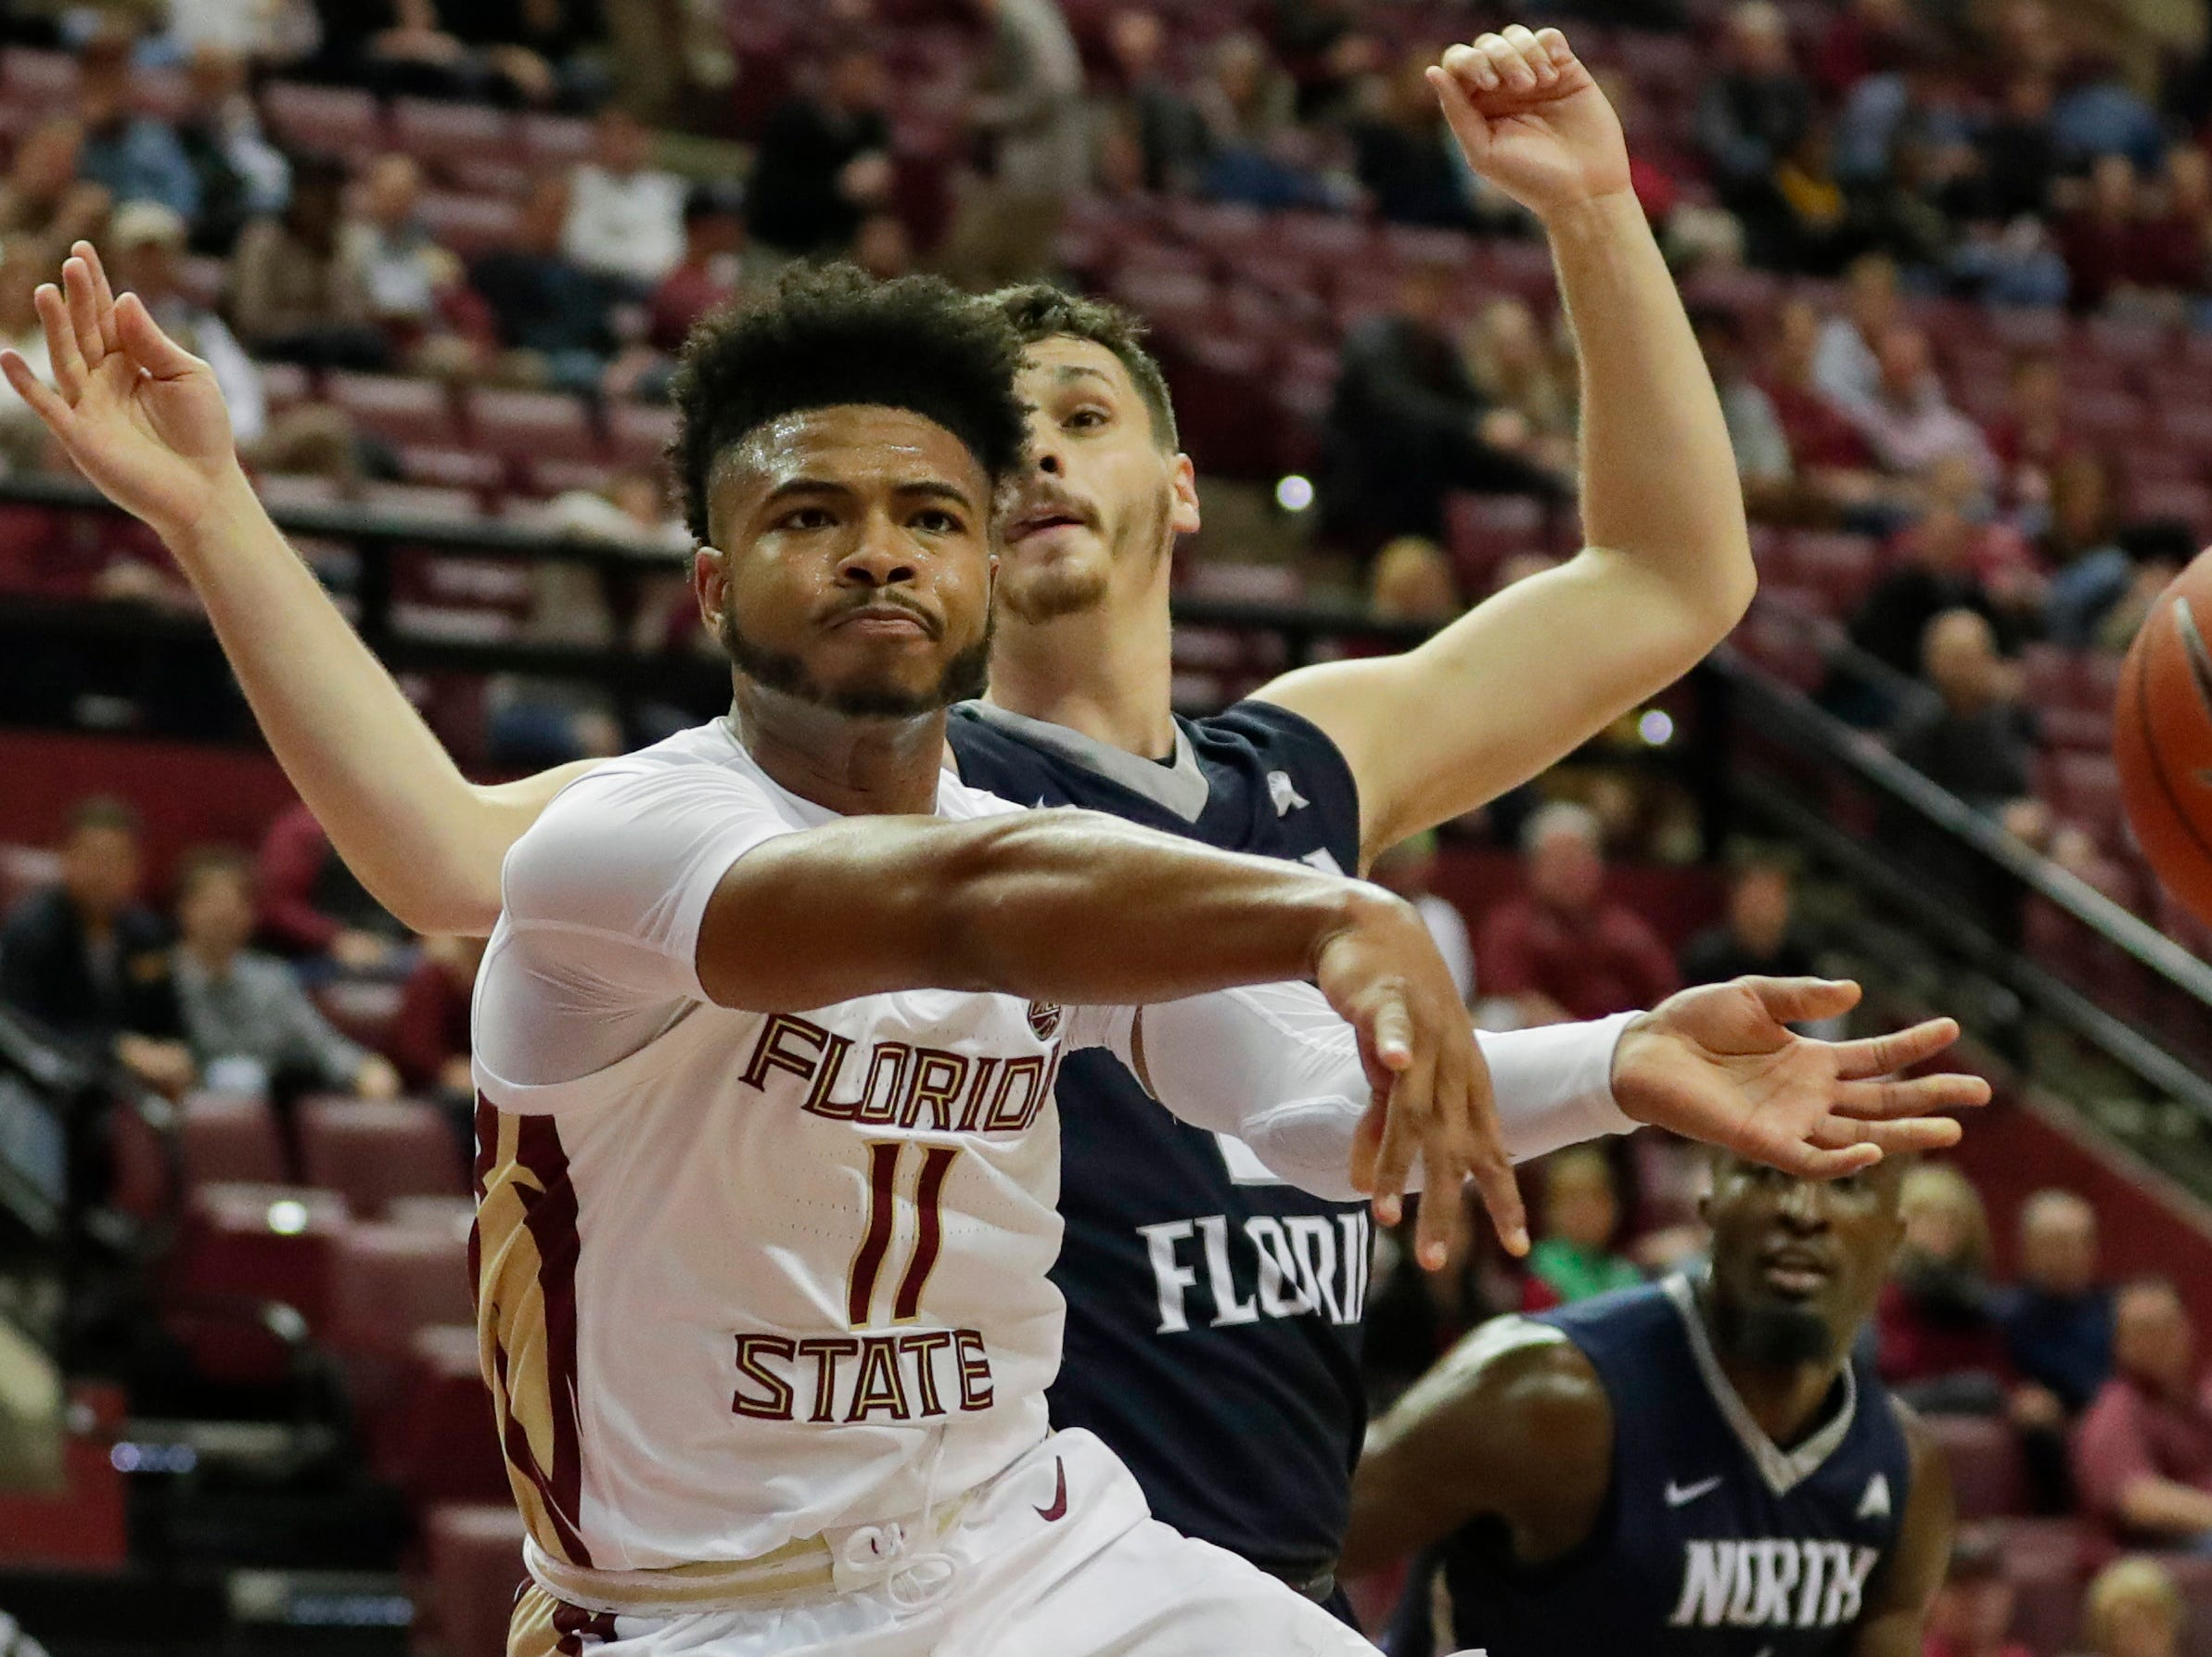 Florida State Seminoles guard David Nichols (11) makes a quick pass from under the hoop during a game between Florida State University and the University of North Florida at Donald L. Tucker Civic Center in Tallahassee, Fla. Wednesday, Dec. 19, 2018.